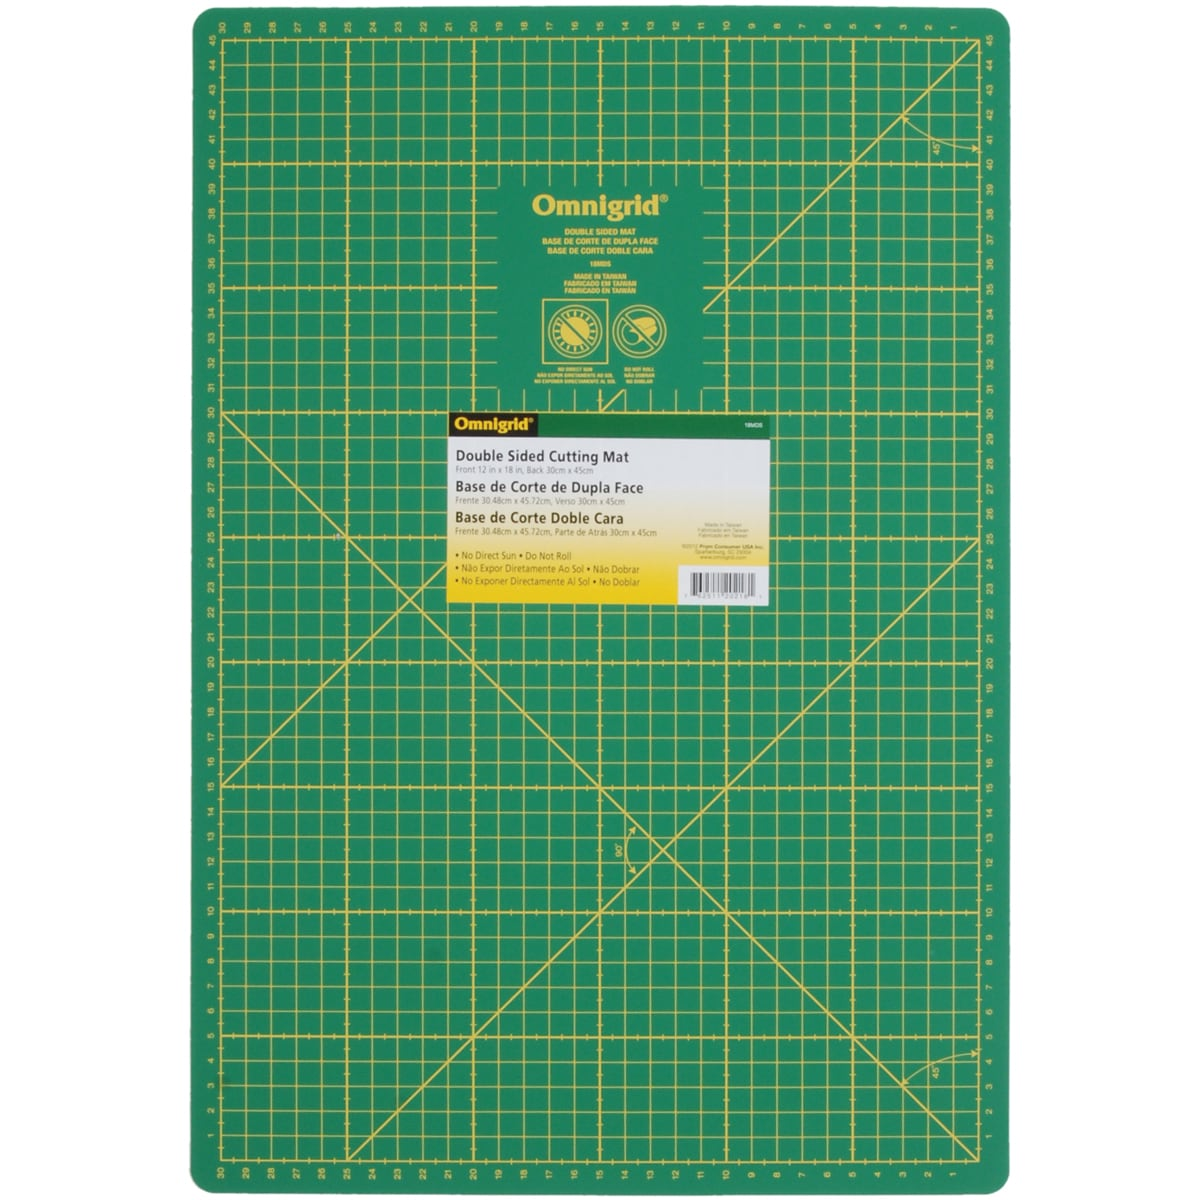 PRYM-DRITZ CORP Omnigrid Double Sided Mat Inches/Centimet...